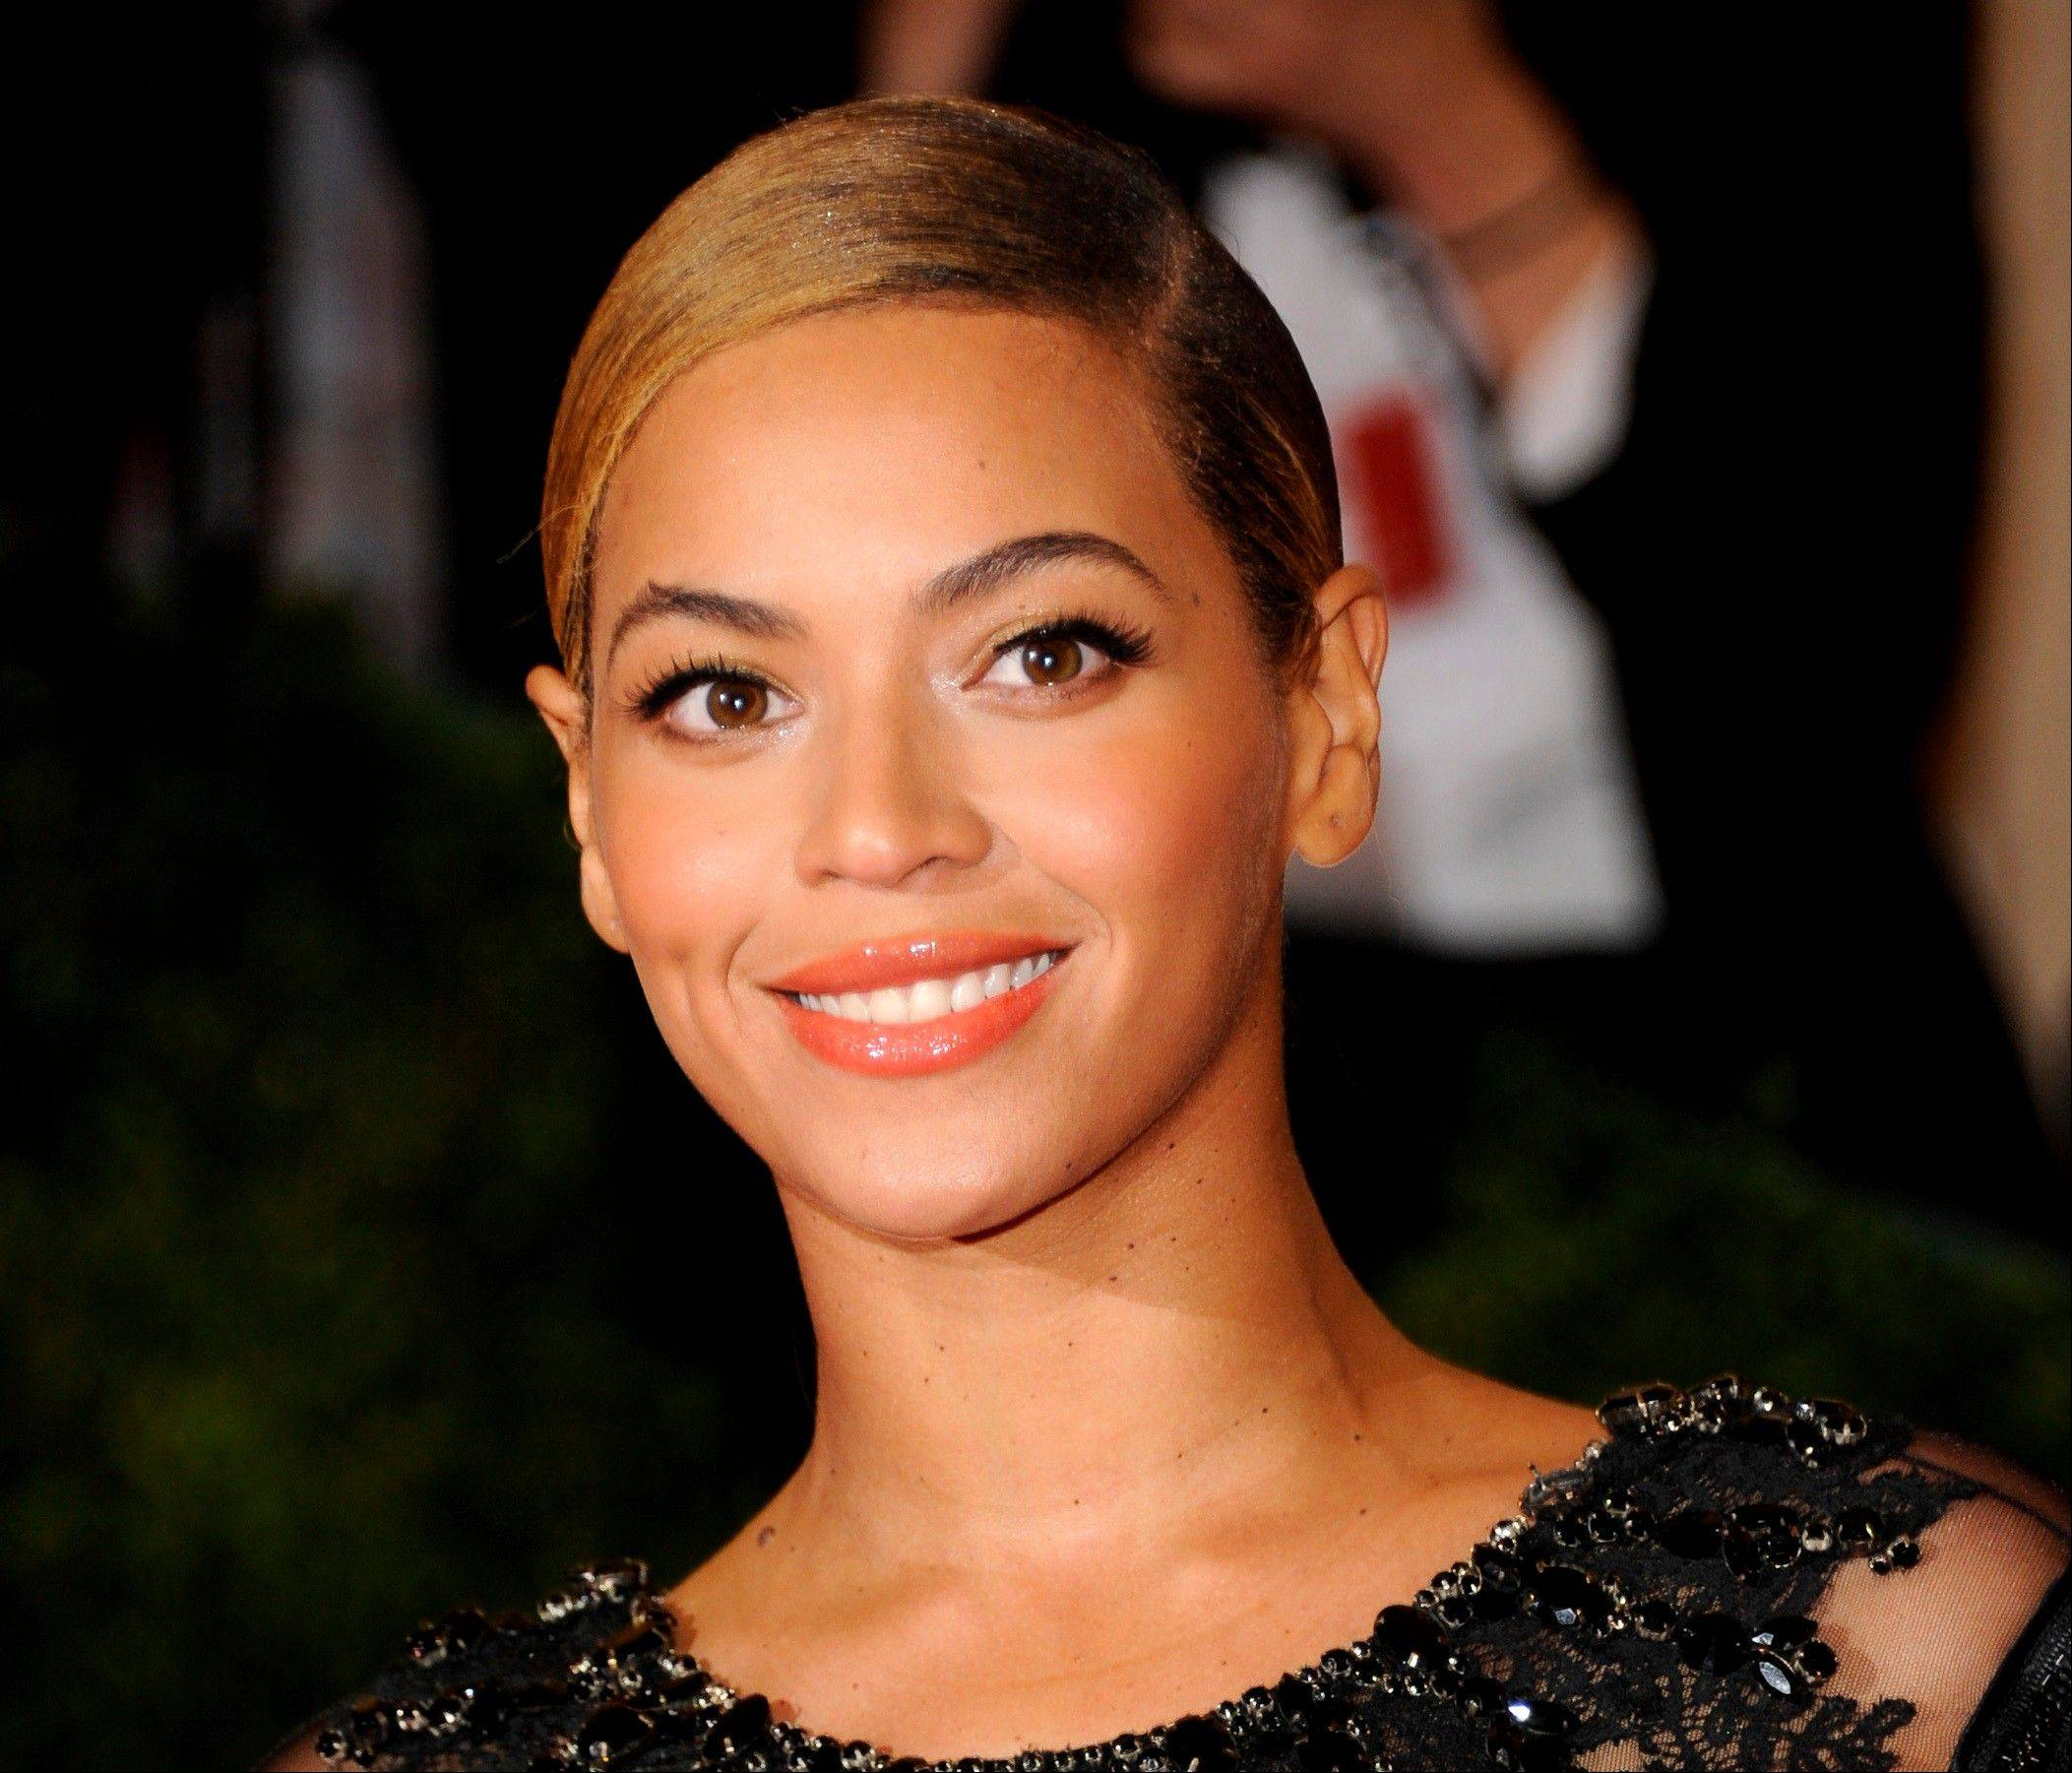 HBO announced Monday that a documentary about Beyonc� will debut Feb. 16, 2013. Beyonc� is directing the film and it will include footage she shot herself with her laptop.